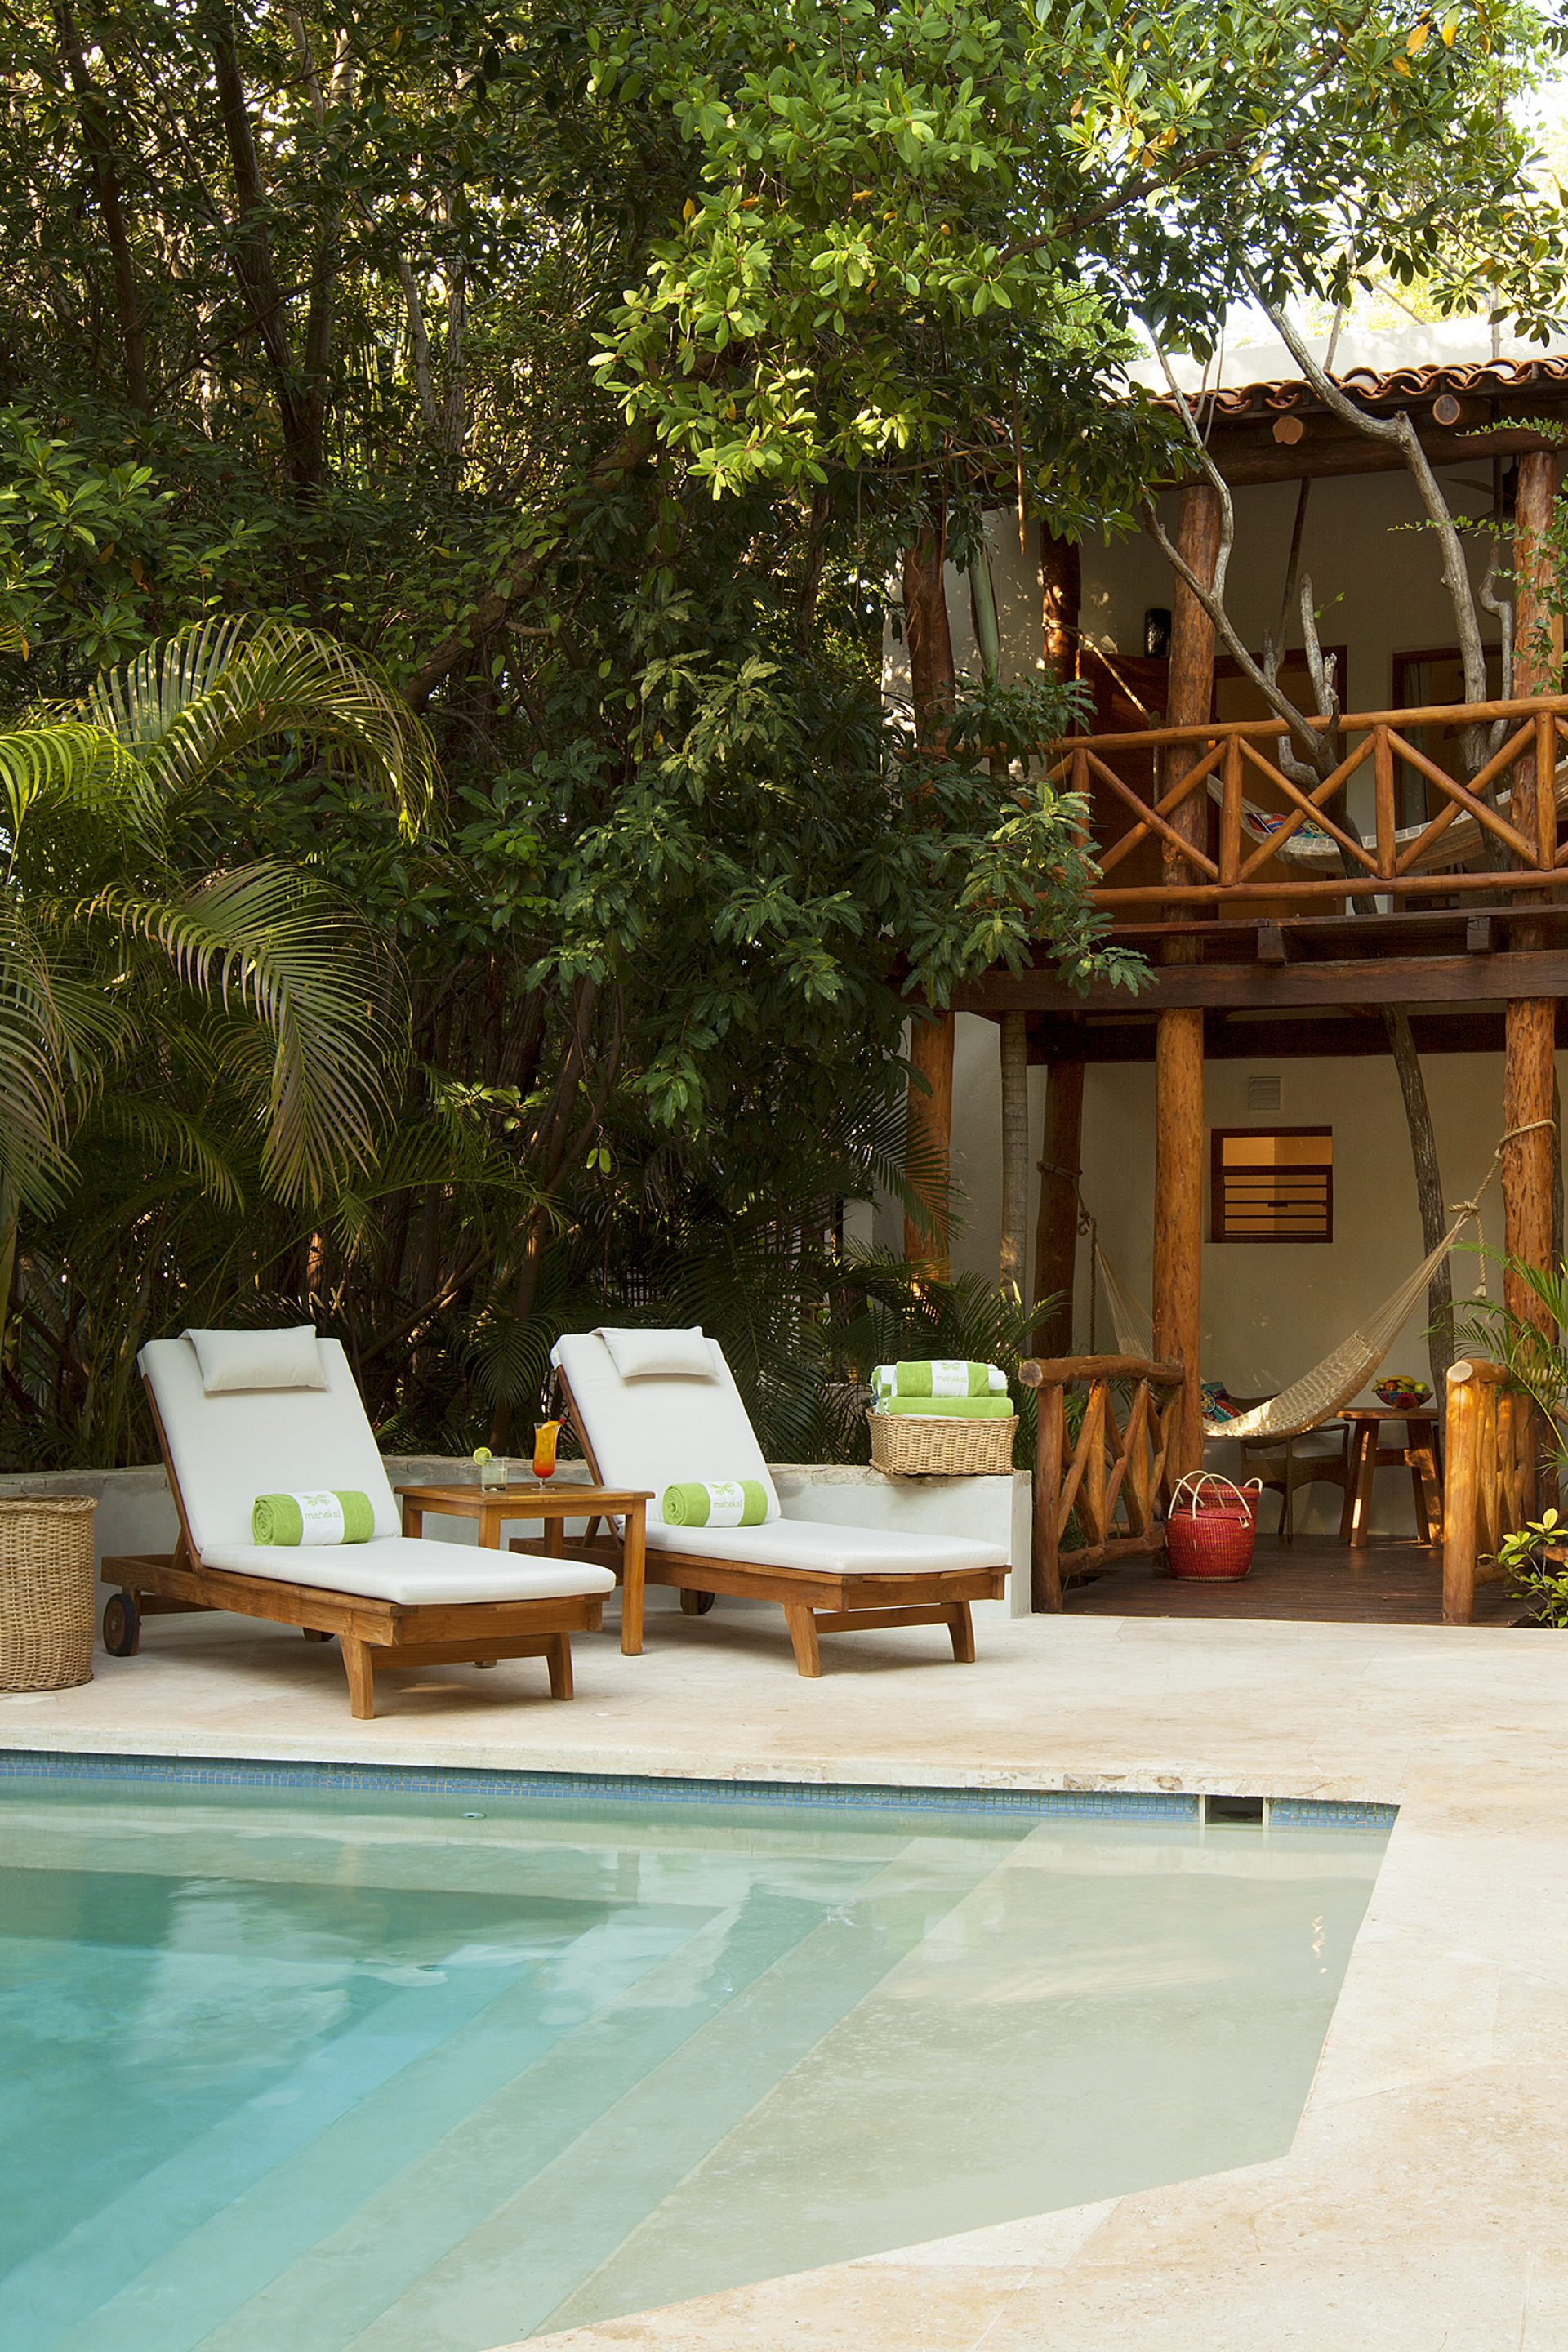 Treehouse Jungle accommodations in Playa del Carmen